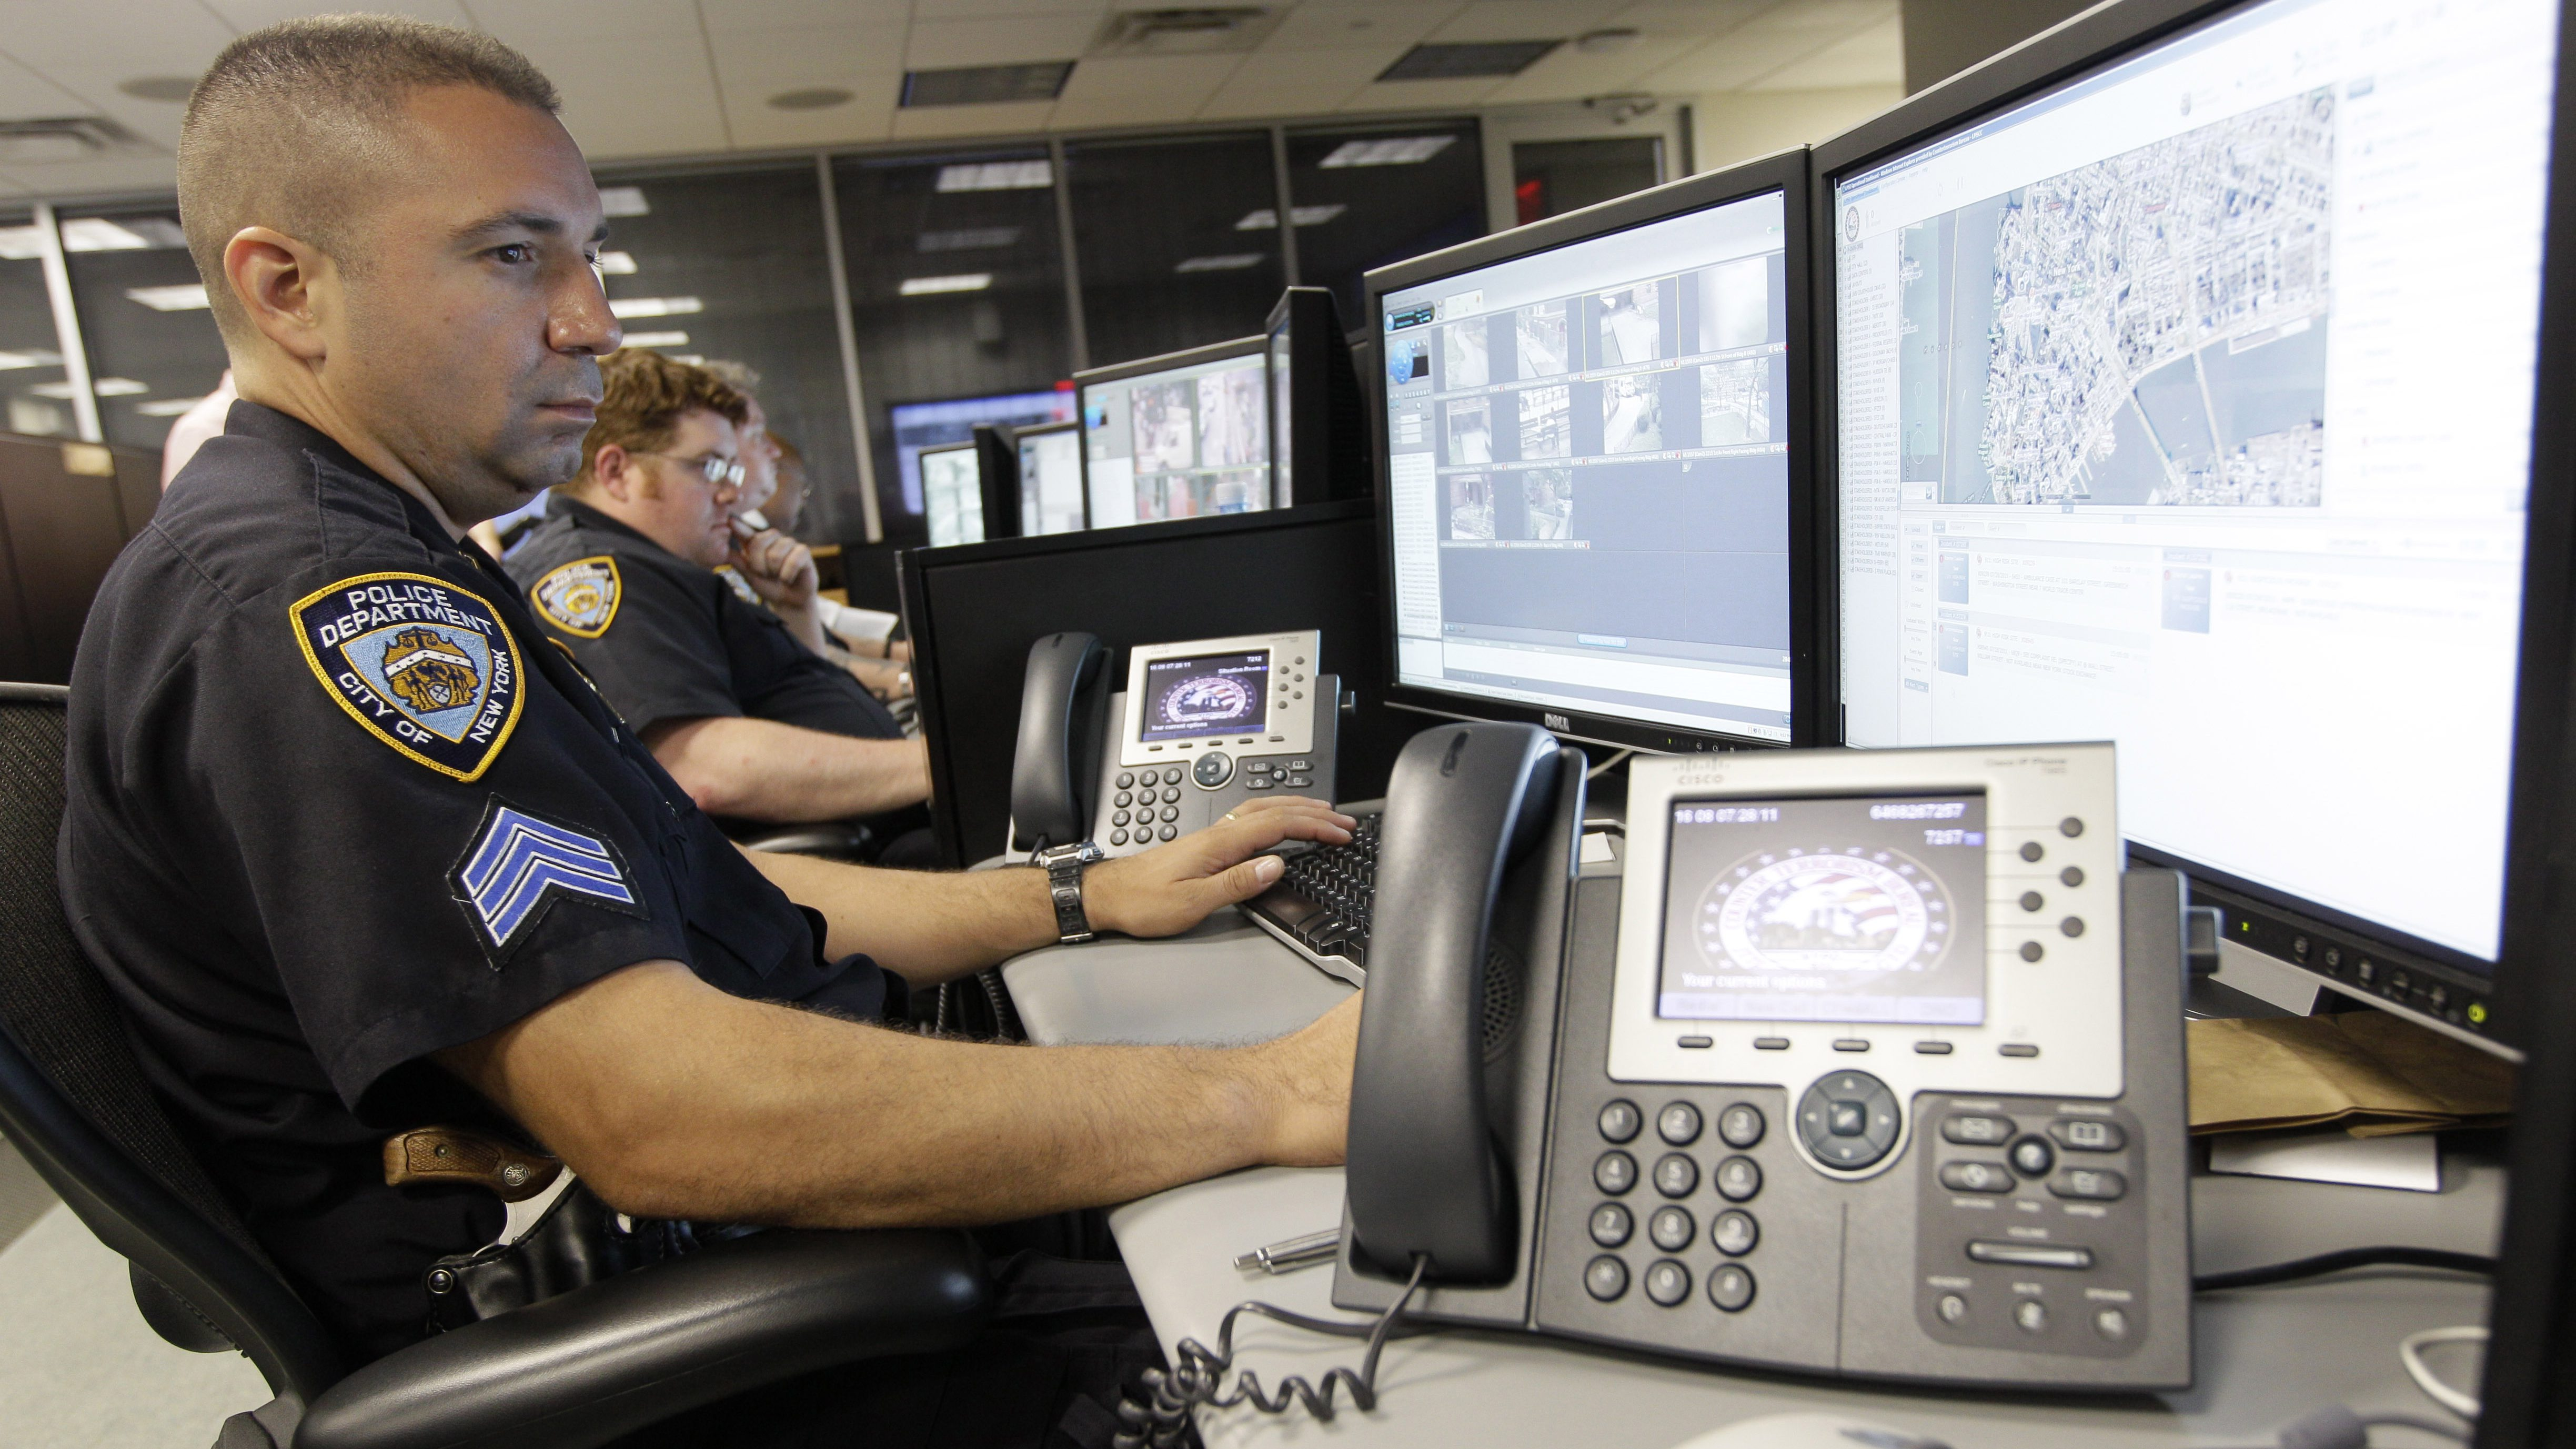 FILE - In this Thursday, July 28, 2011 file photo, police officers look at computer monitors in the operations center of the Lower Manhattan Security Coordination Center in New York. When news came of a terror attack in Paris in early January, the New York Police Department went on high alert. (AP Photo/Mary Altaffer)